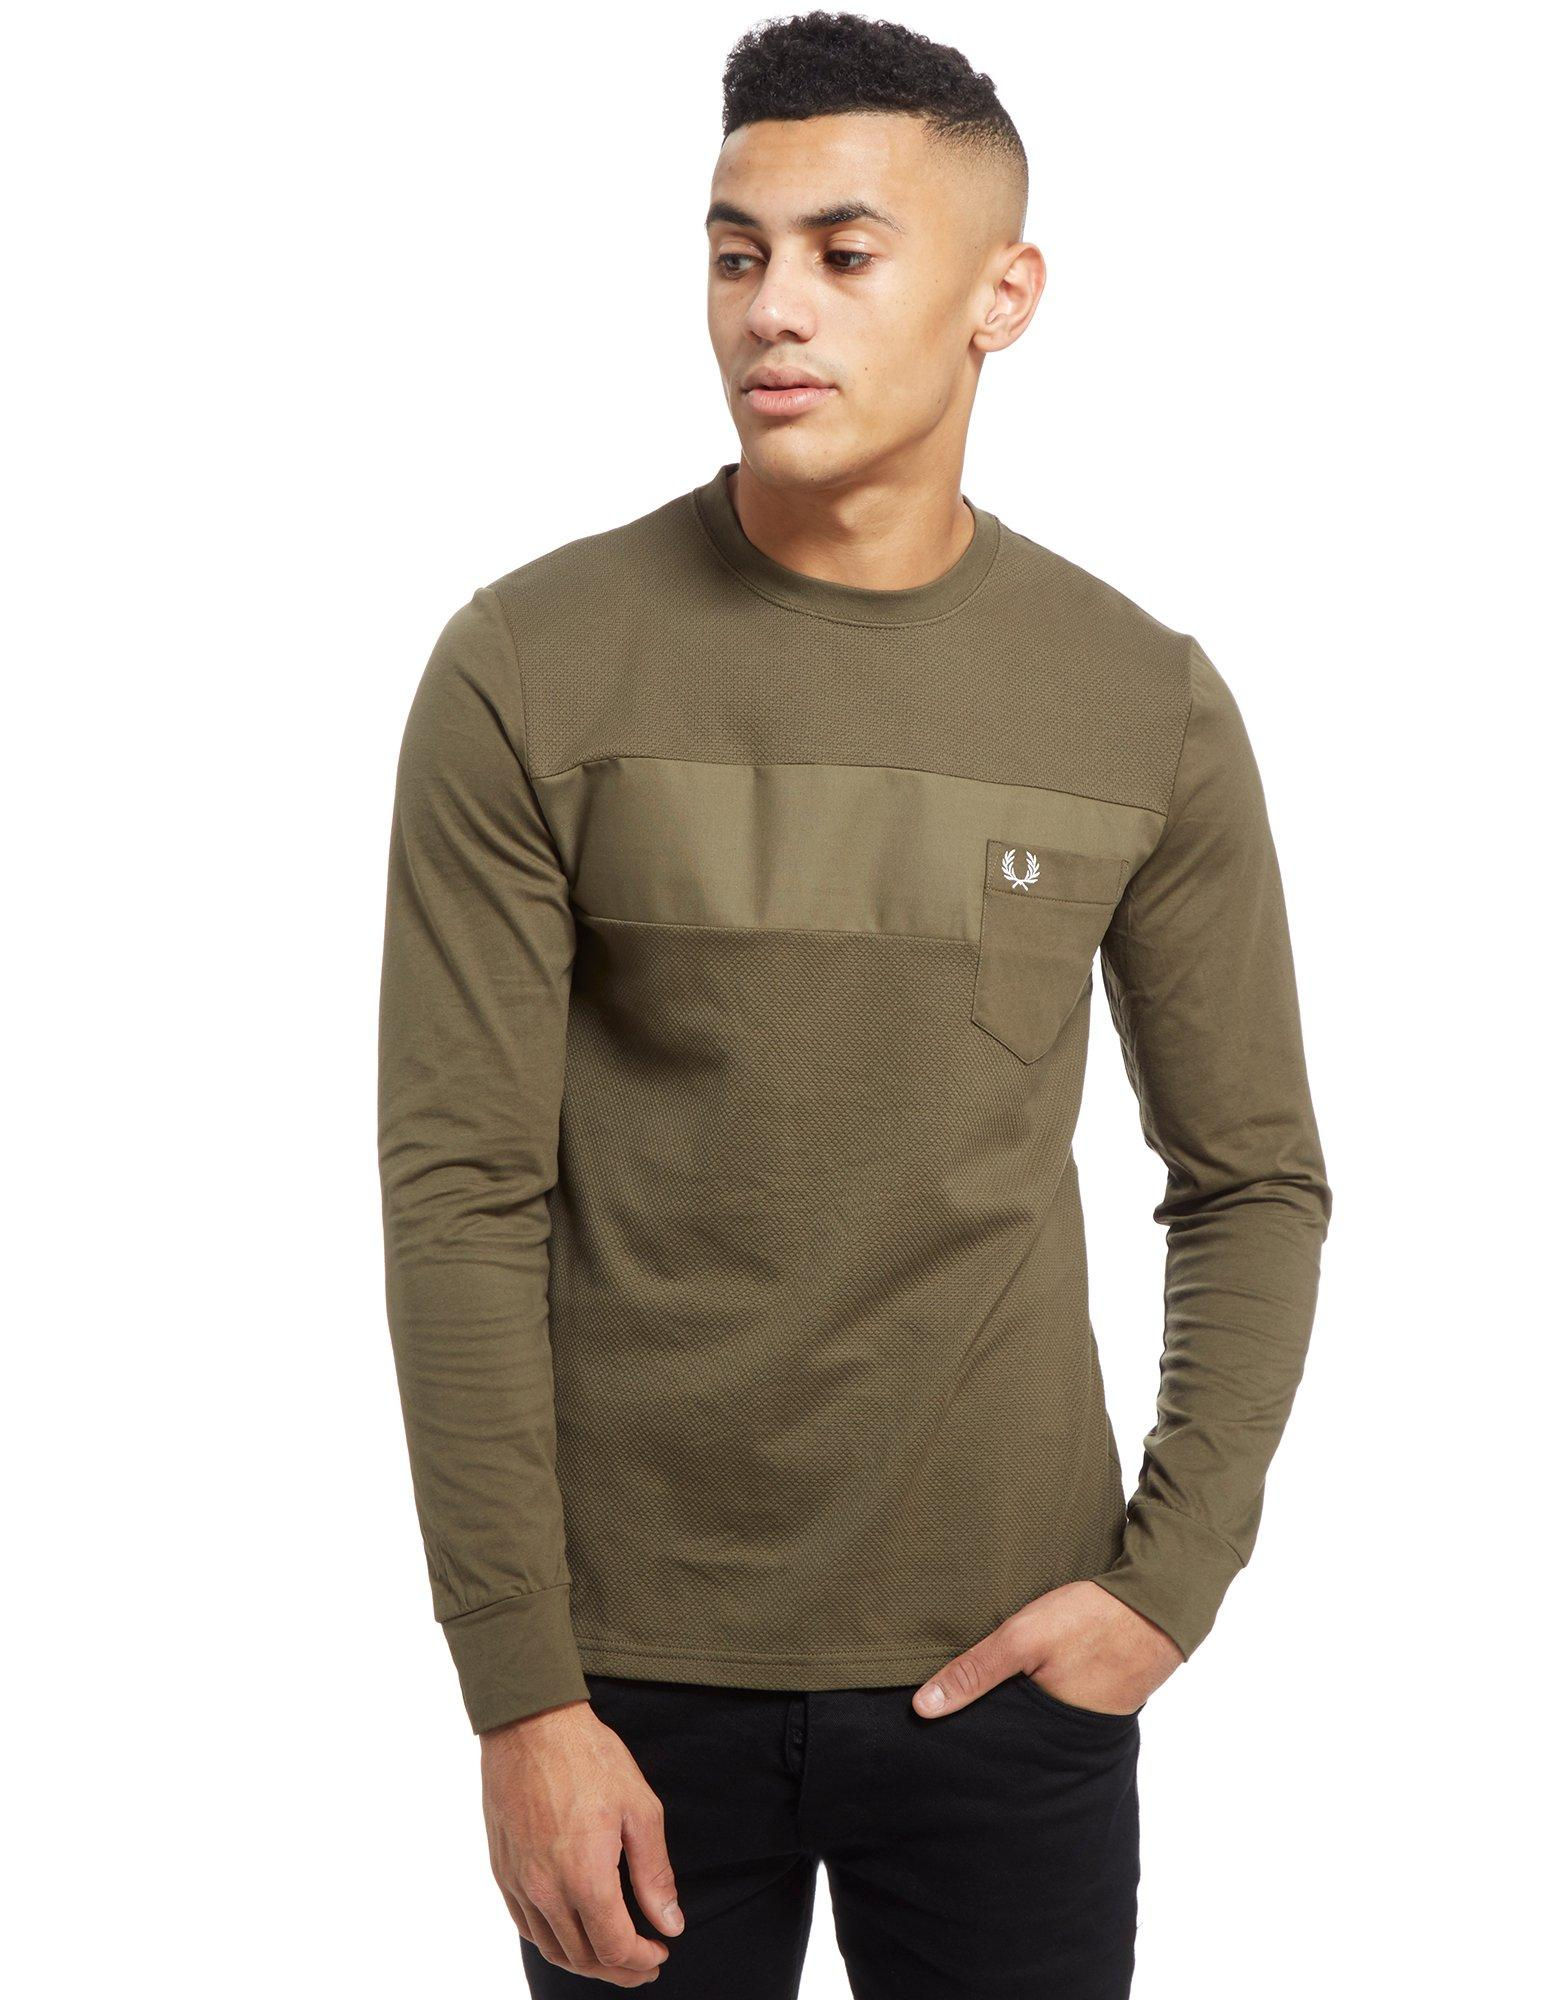 Fred perry green jacket jd